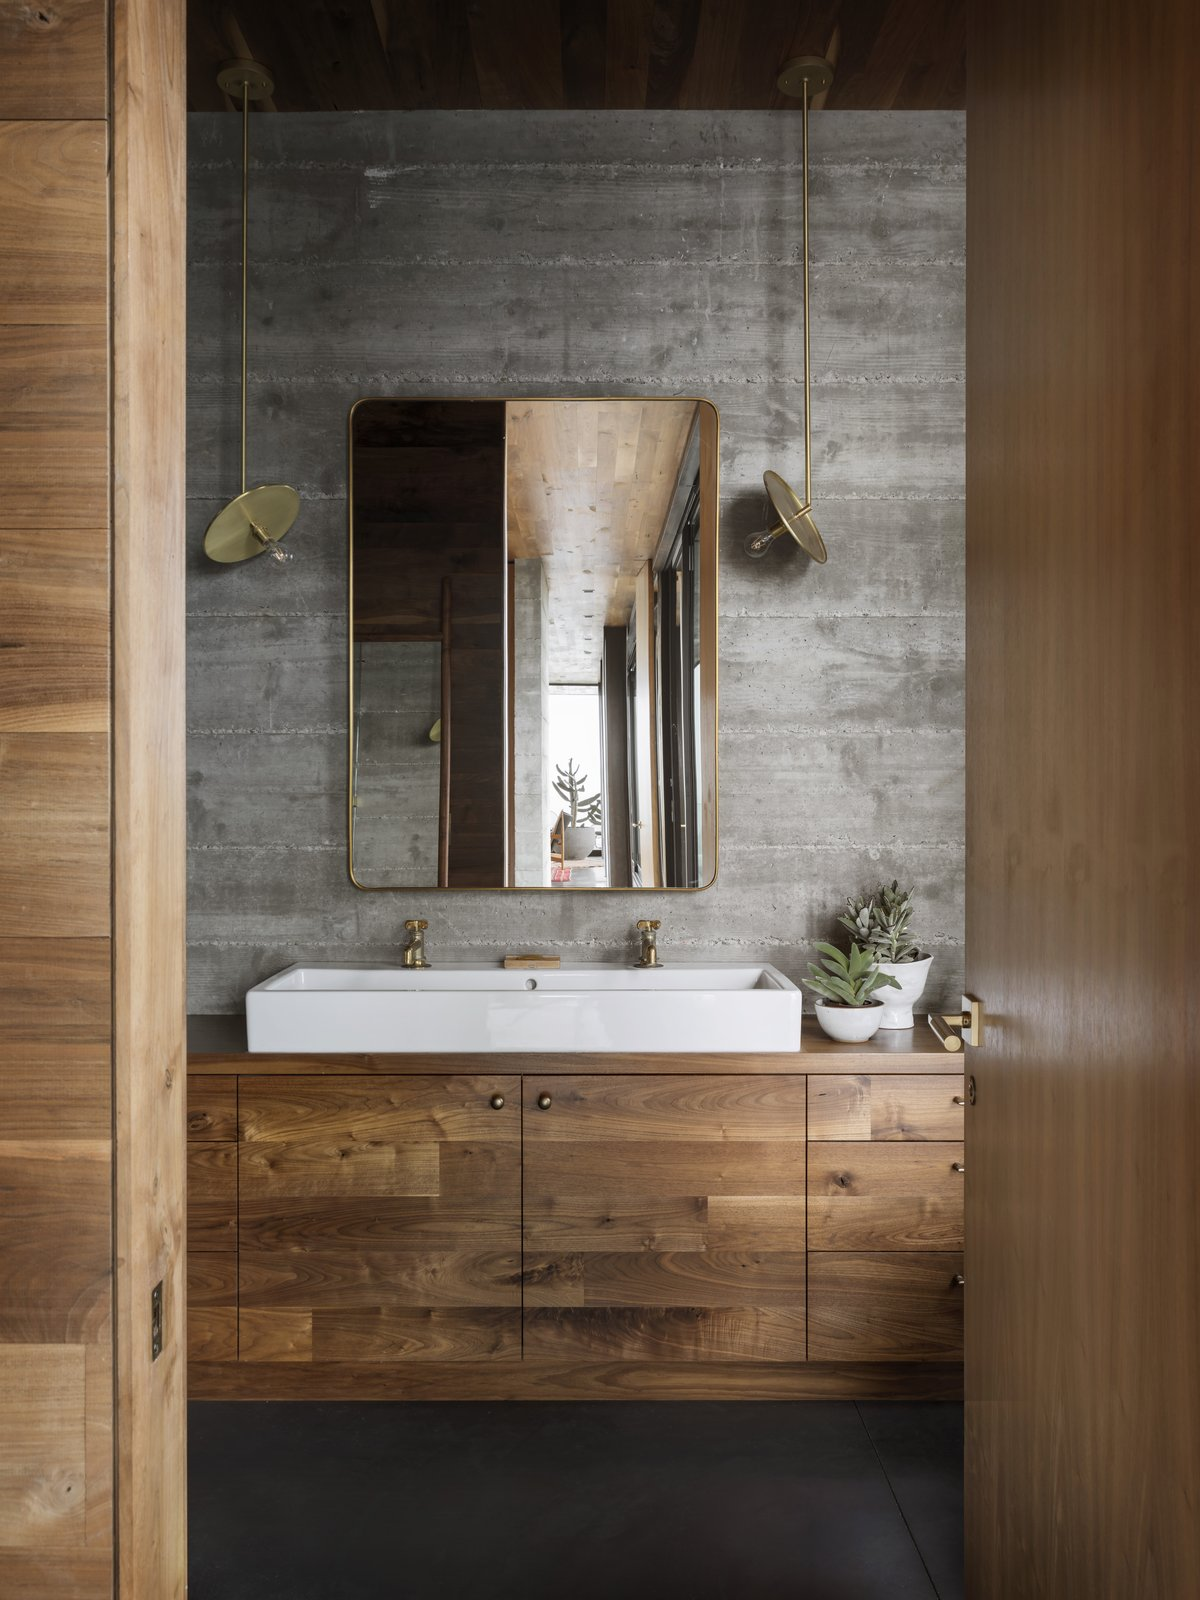 Bath, Vessel, Pendant, and Wood Brass and bronze accents appear throughout the guesthouse, including in the Waterworks taps, Workstead pendants, and Rejuvenation mirror in the bathroom.  Best Bath Photos from A Gorgeous, Off-Grid Guesthouse Perches Lightly on a California Ranch